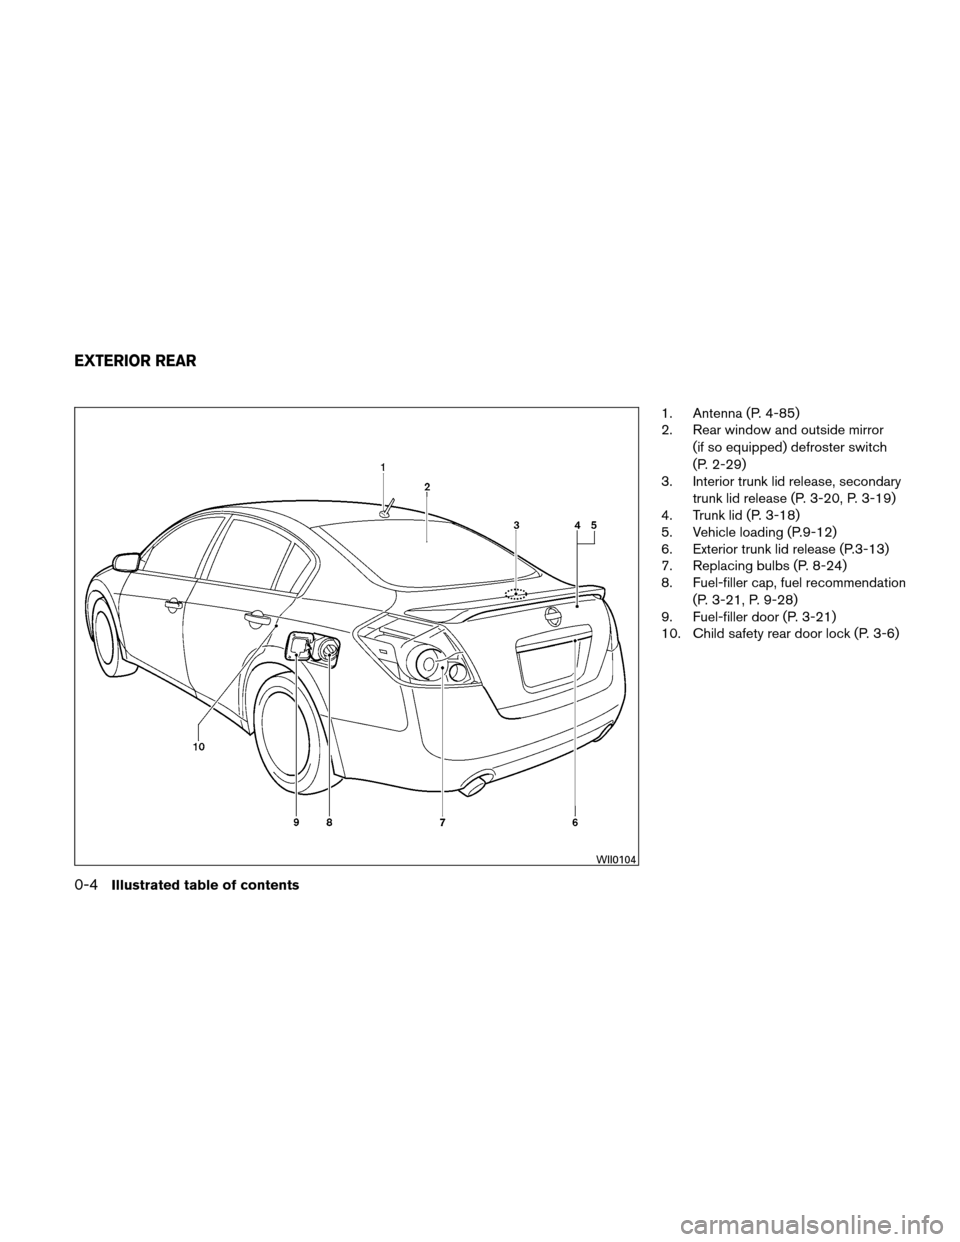 NISSAN ALTIMA HYBRID 2010 L32A / 4.G Owners Manual, Page 23